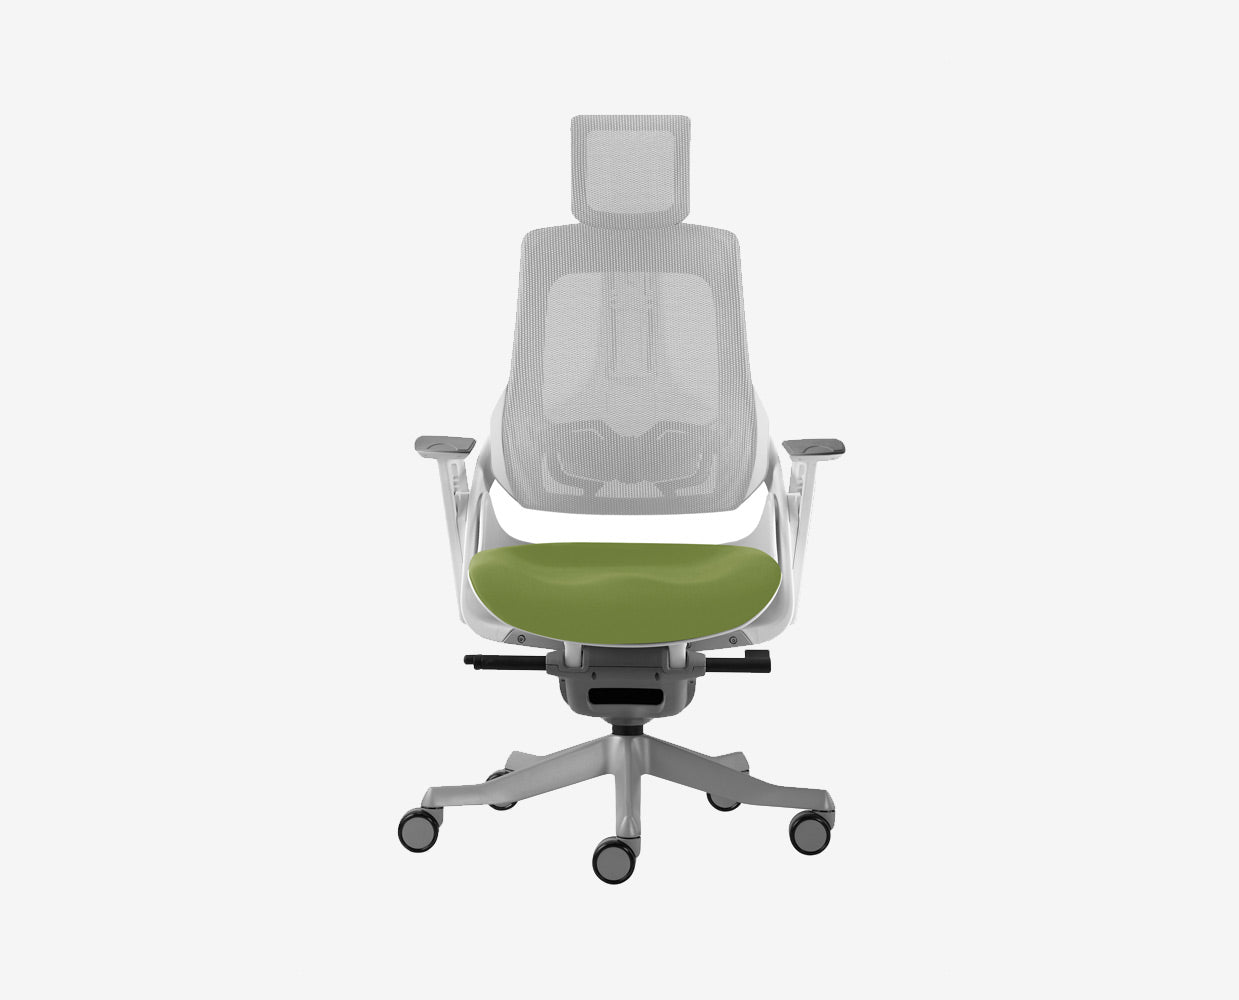 Wau Desk Chair - Green